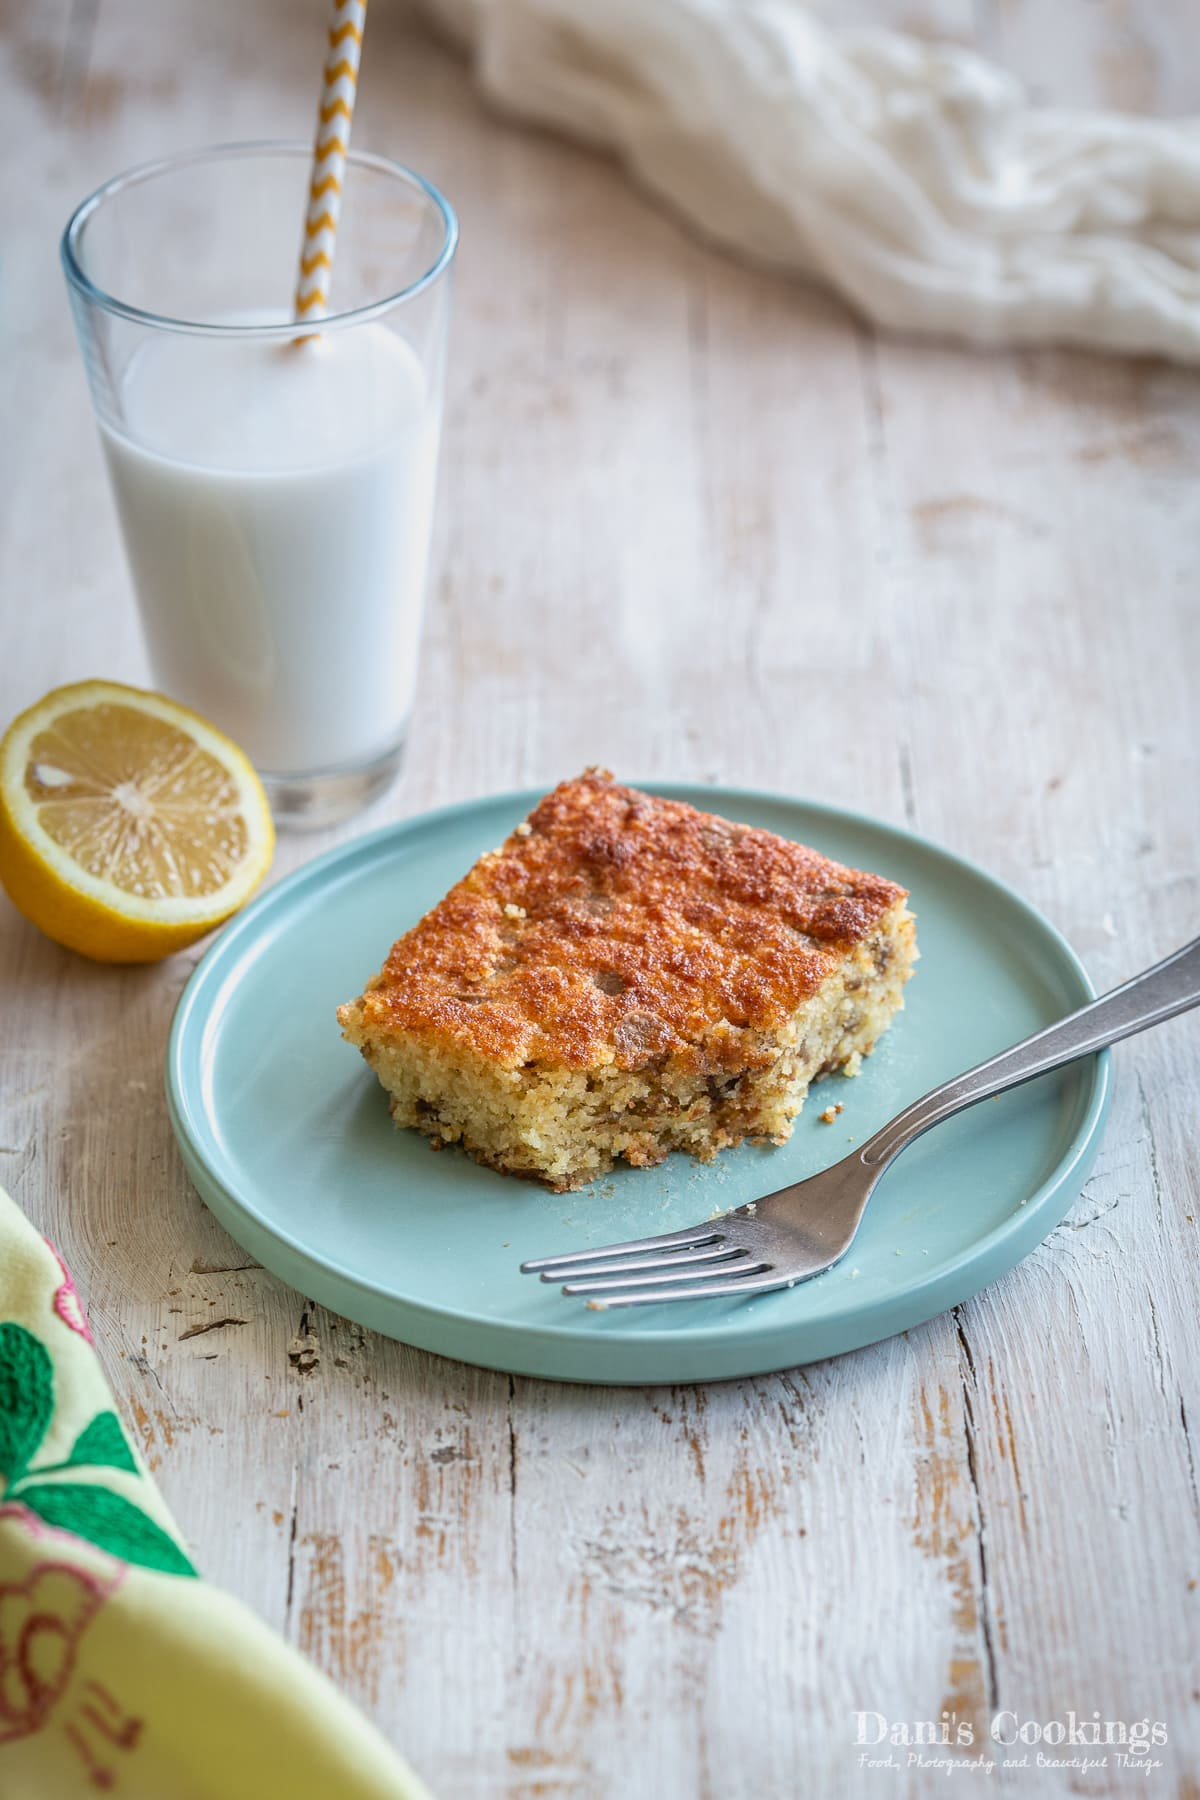 a blondie served on a plate with milk and lemon aside